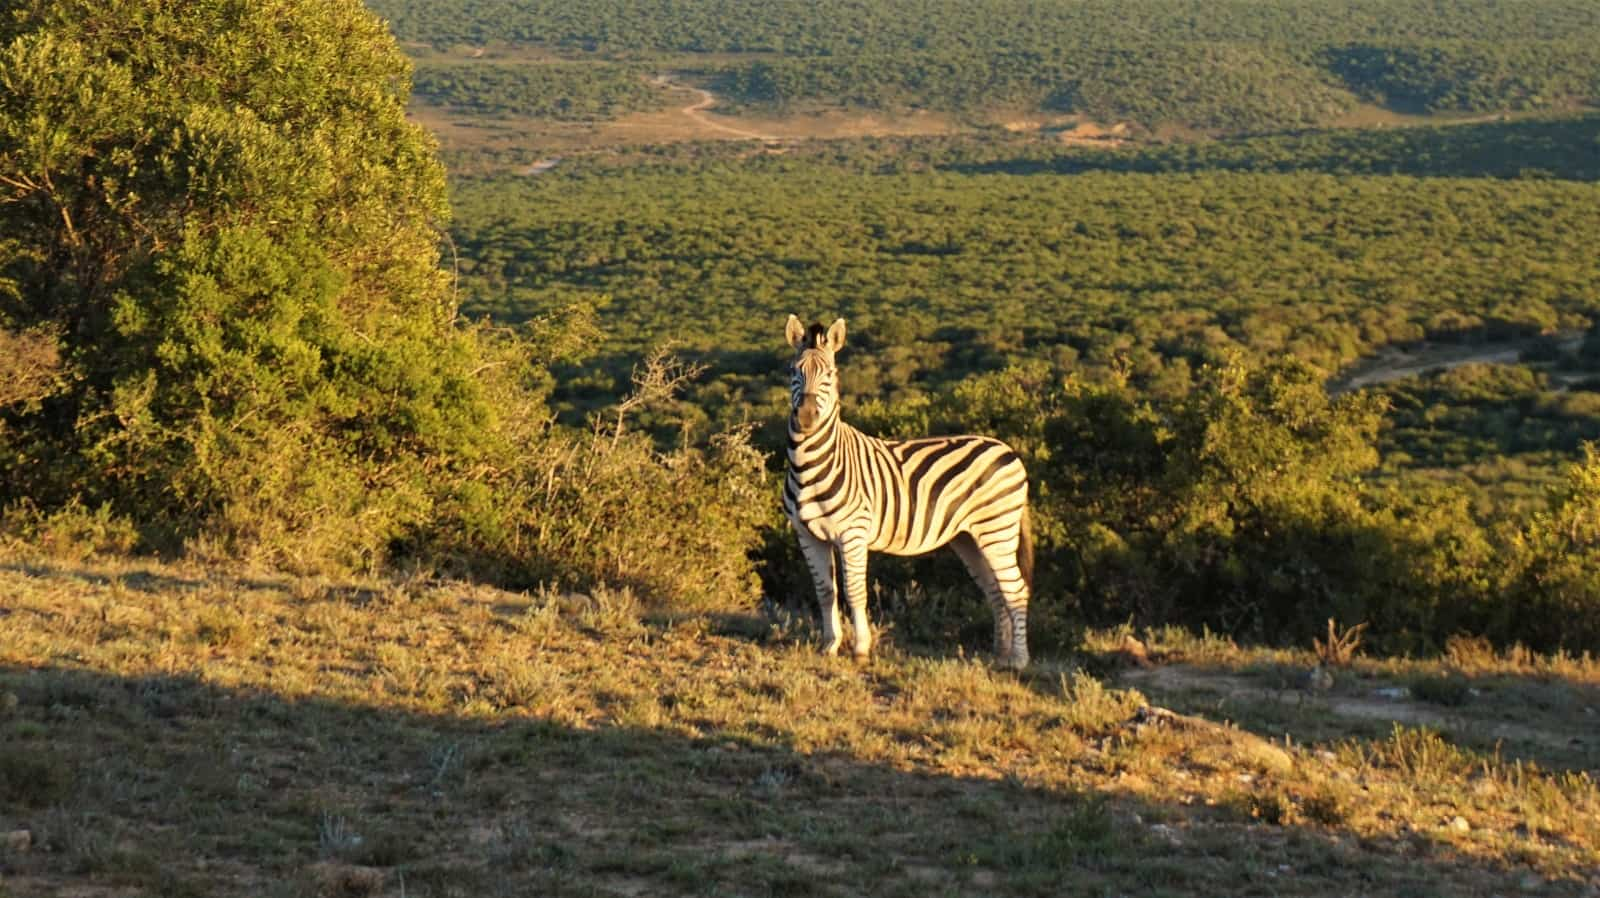 Zebra at Addo Elephant National Park